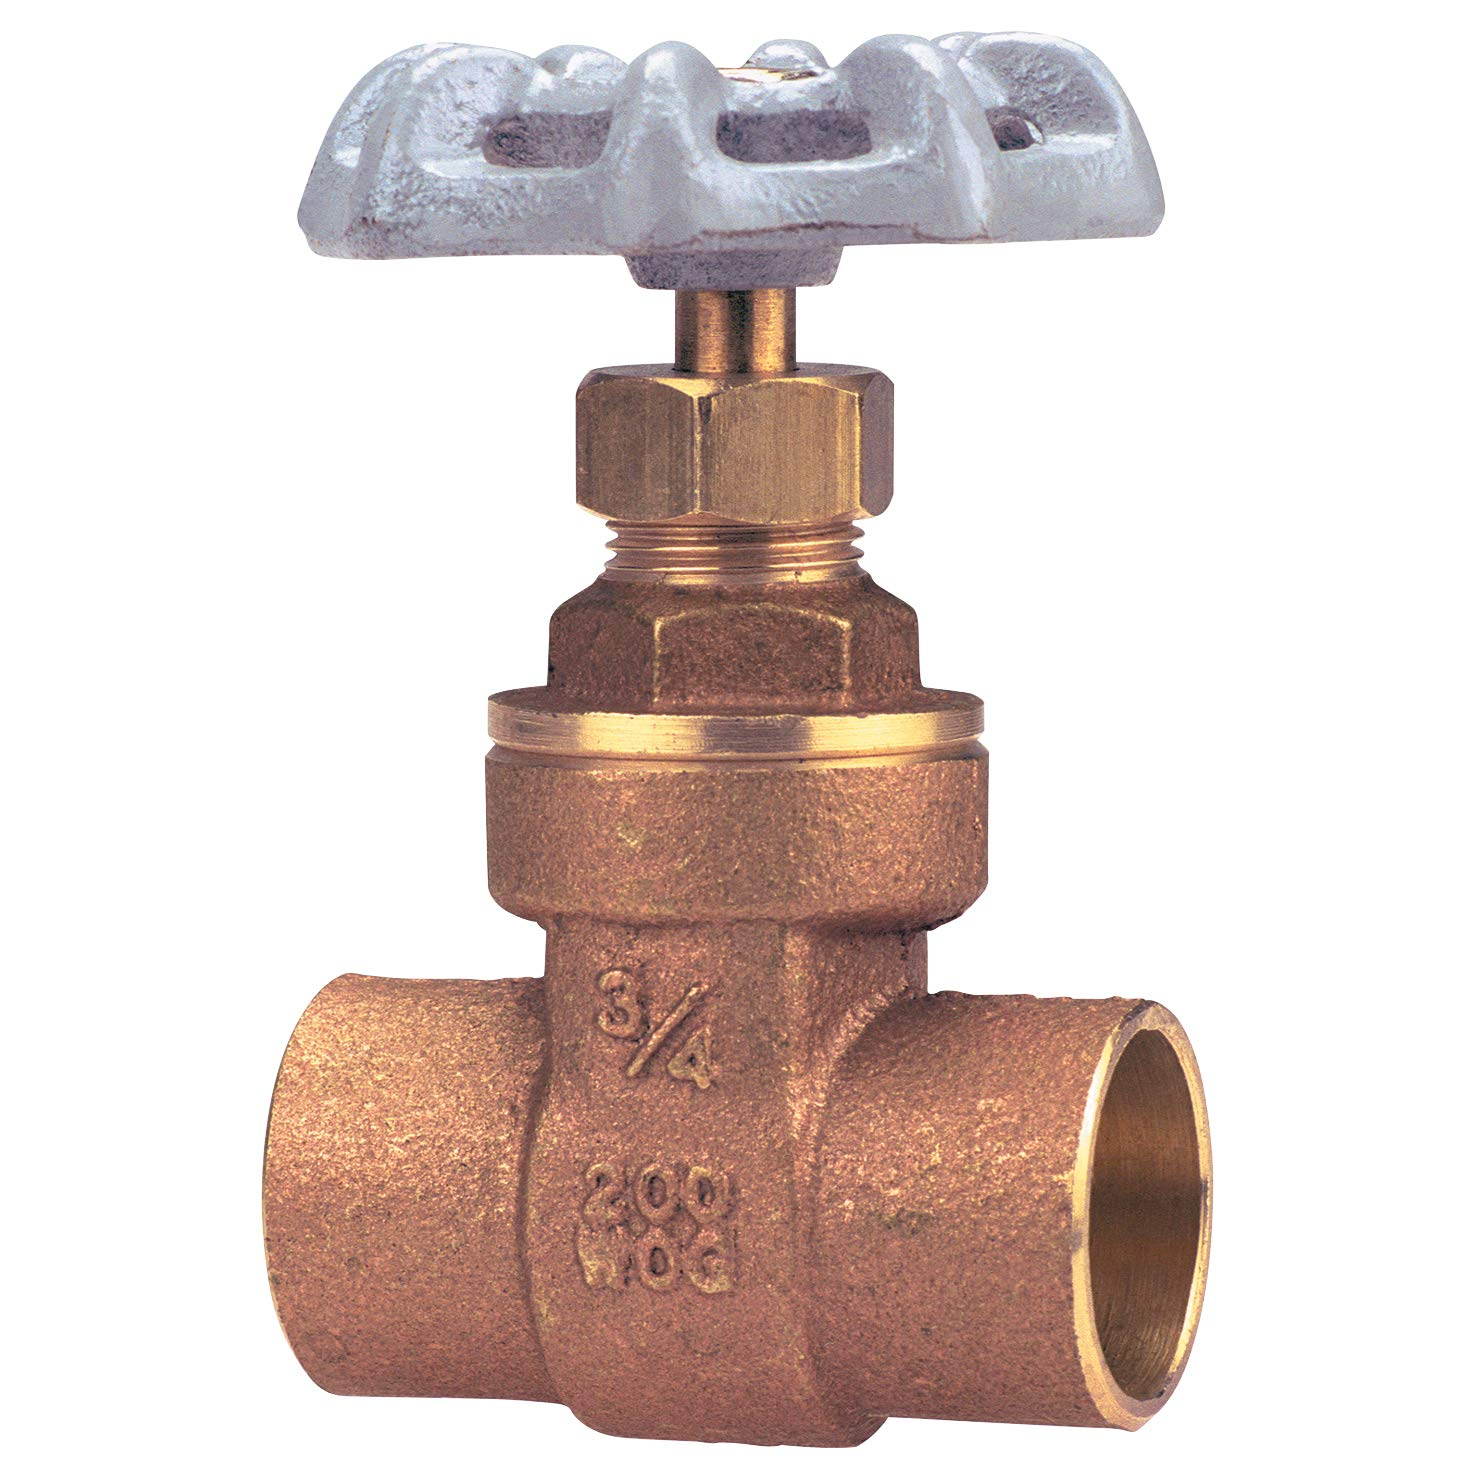 SI8 3//4 Full Port Gate Valve